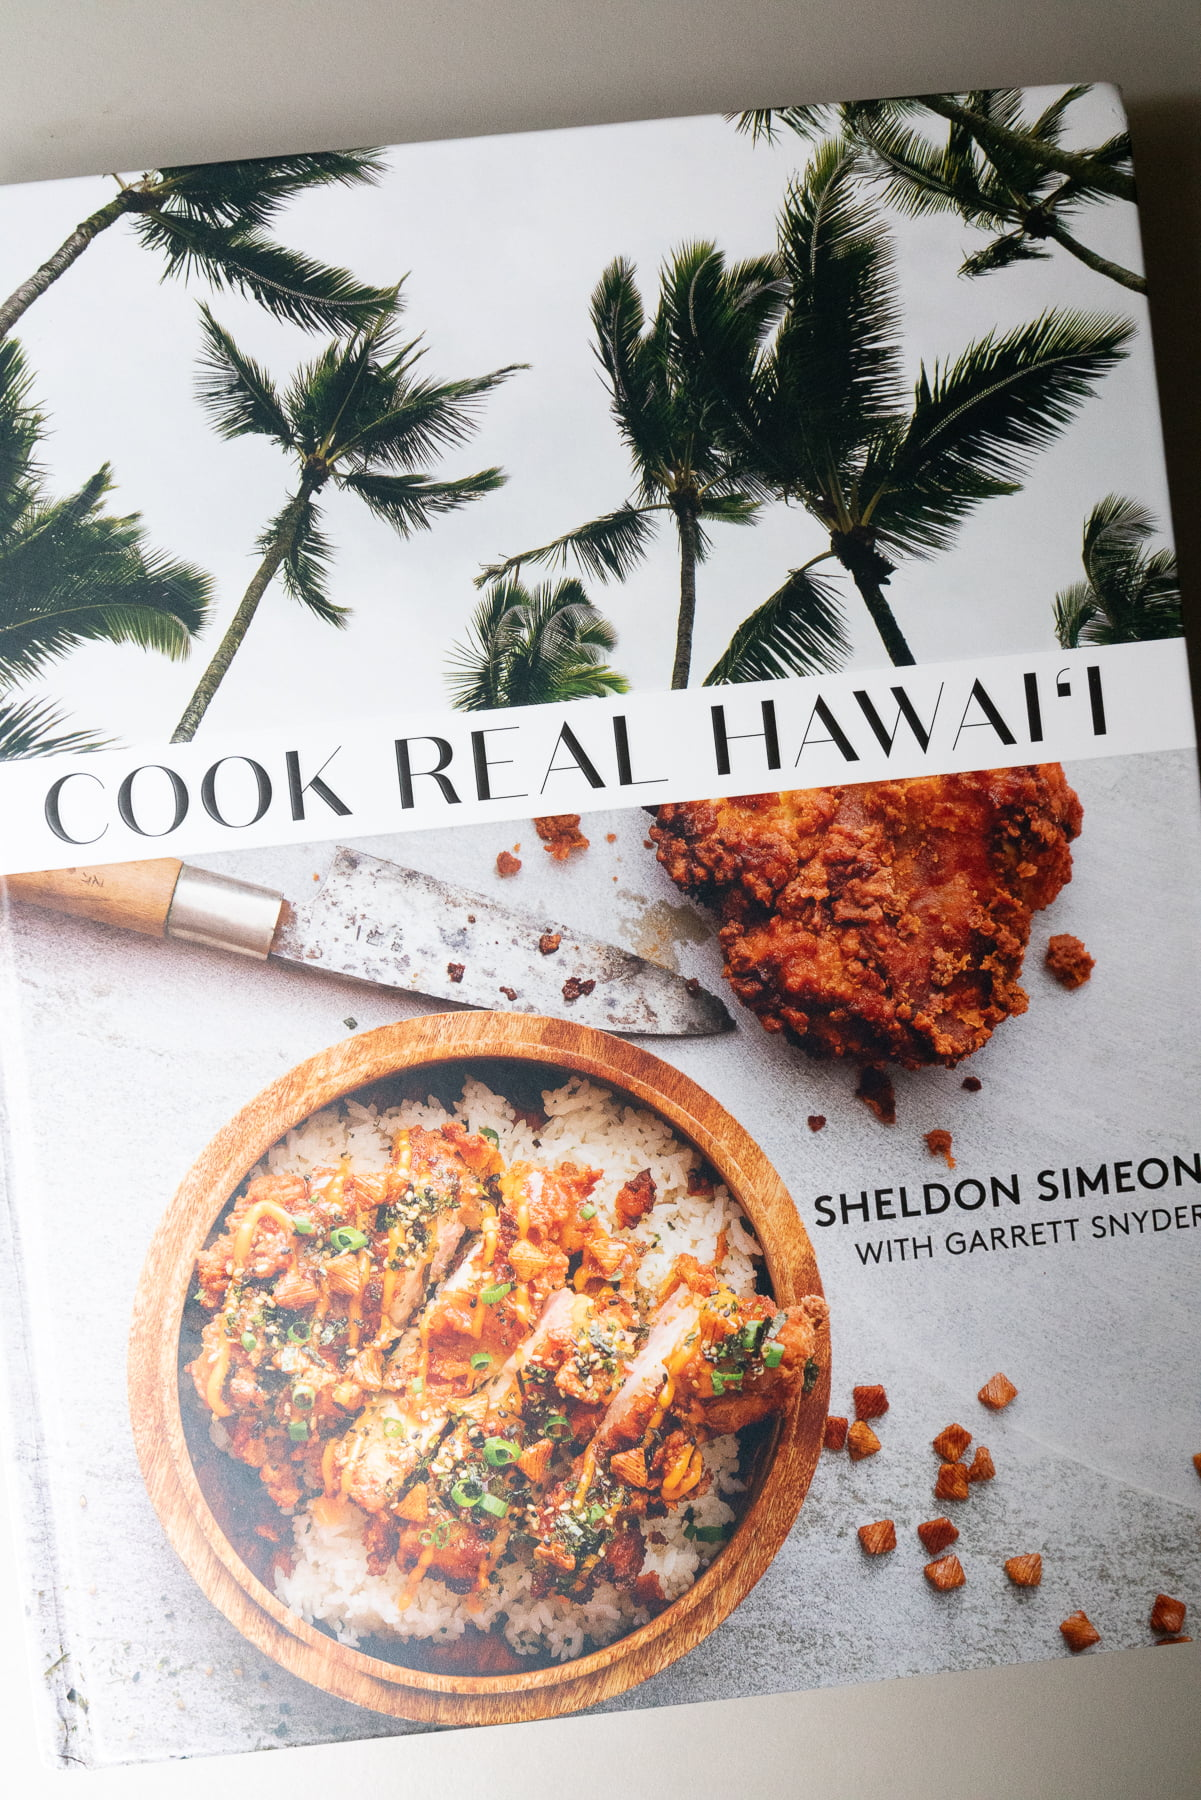 Book cover of Cook Real Hawaii by Sheldon Simeon and Garrett Snyder.